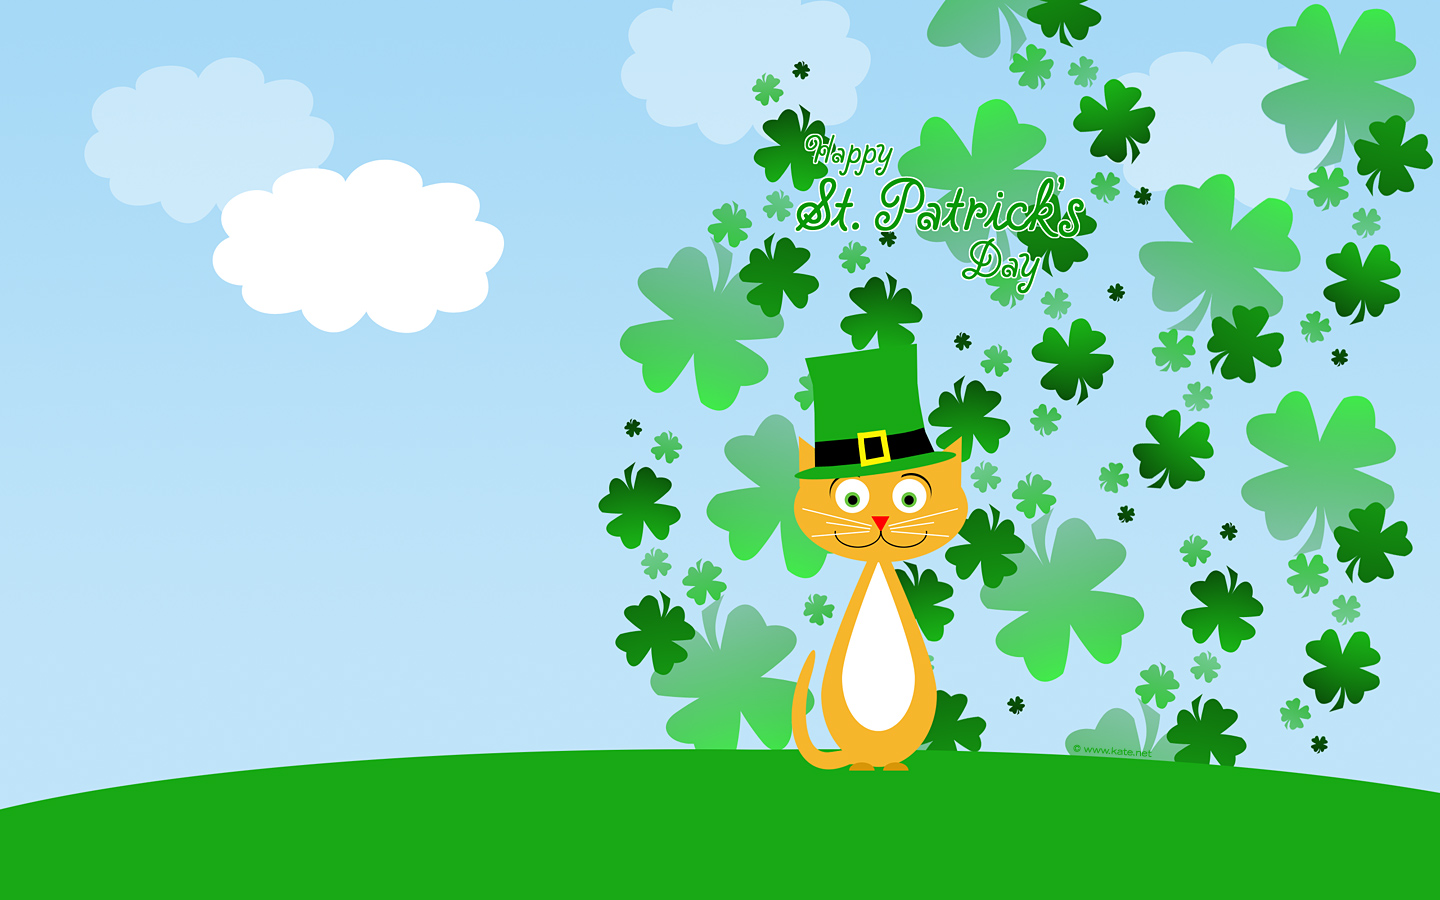 49 St Patrick S Day Wallpaper Backgrounds On Wallpapersafari